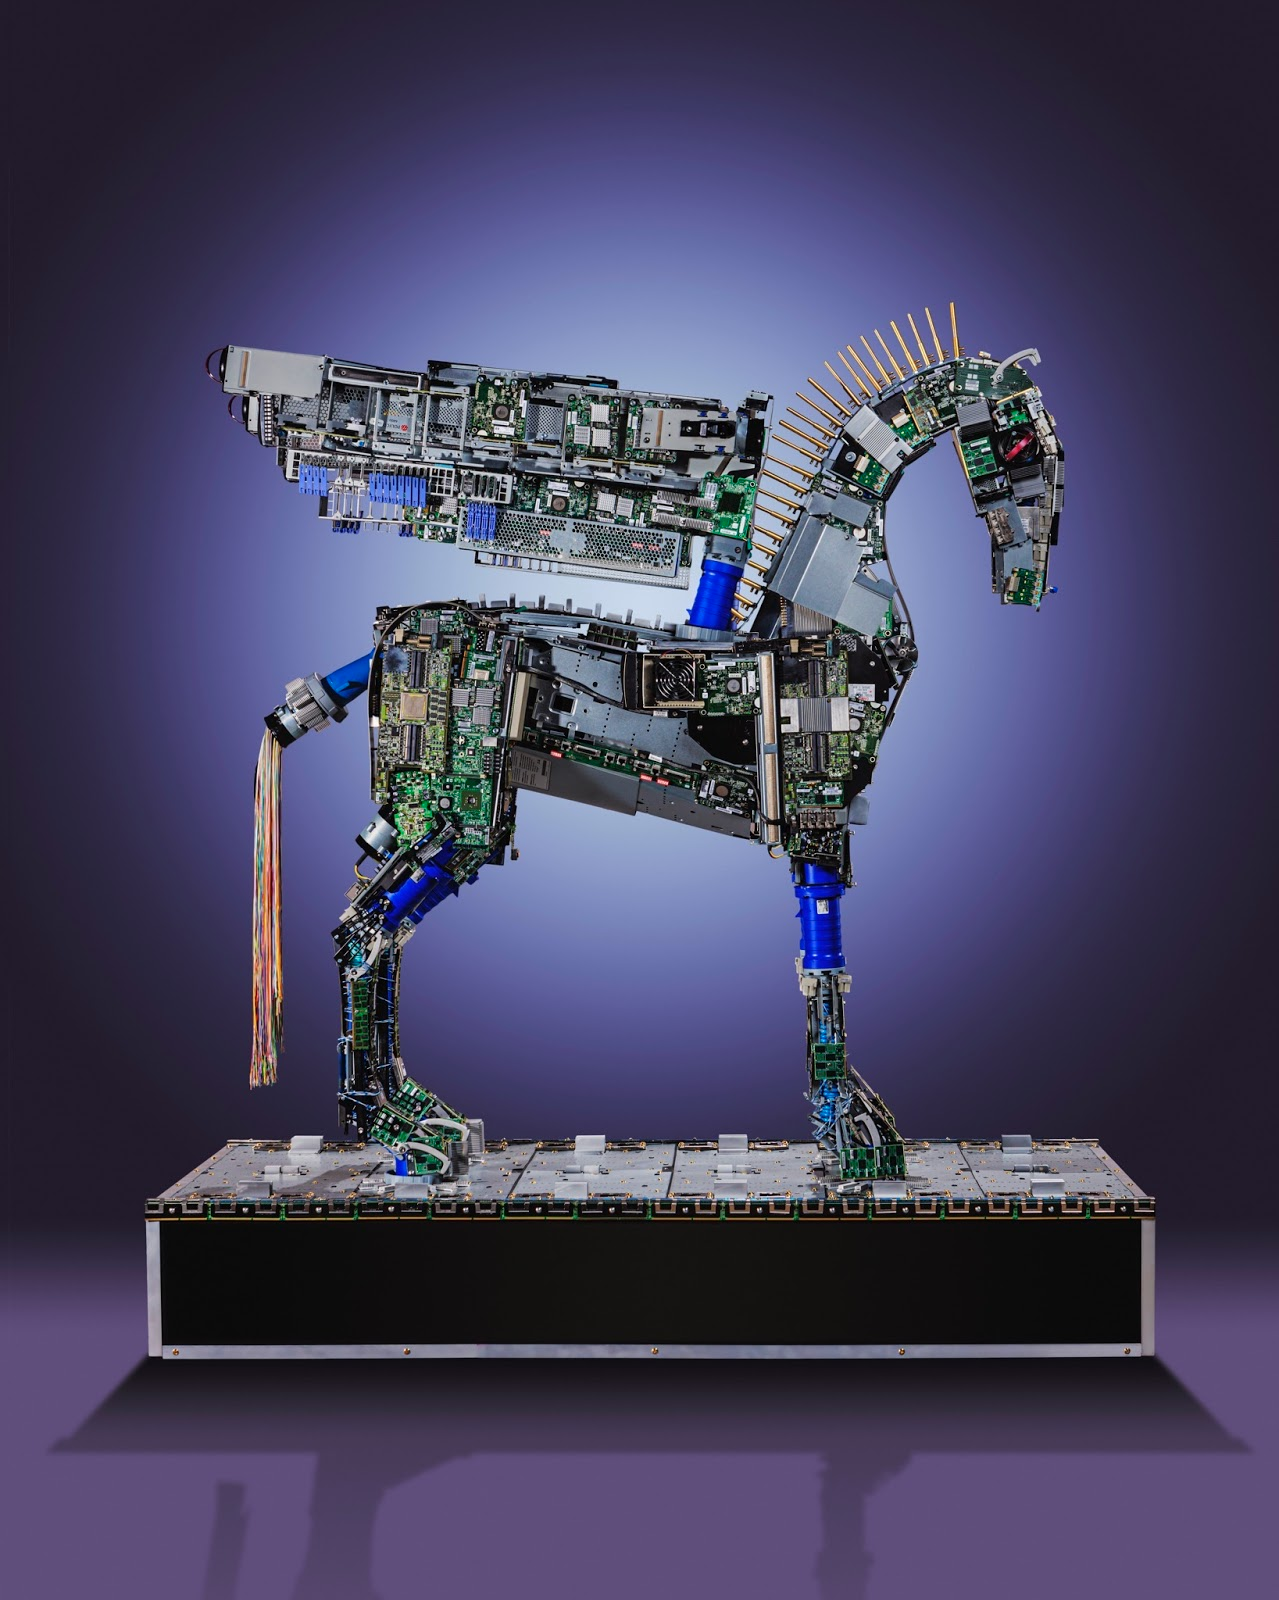 Gabriel Dishaw created Pegasus from parts and pieces of the data centers. Capital One will display the sculpture on its Knolls campus in Richmond, VA.